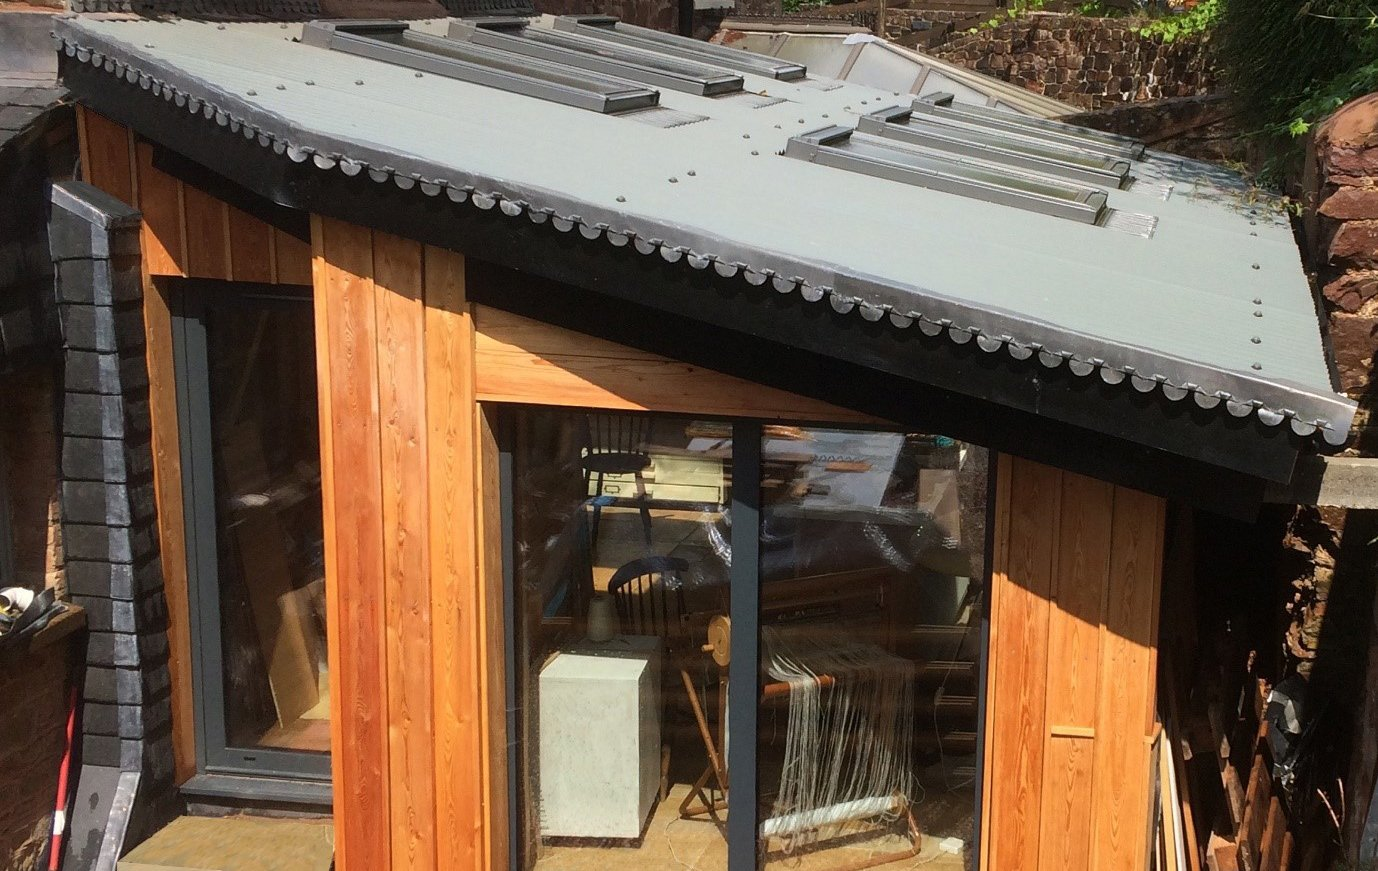 This Garden Studio was created using Cladco Bespoke Roofing sheets in light grey with Velux windows for extra light.